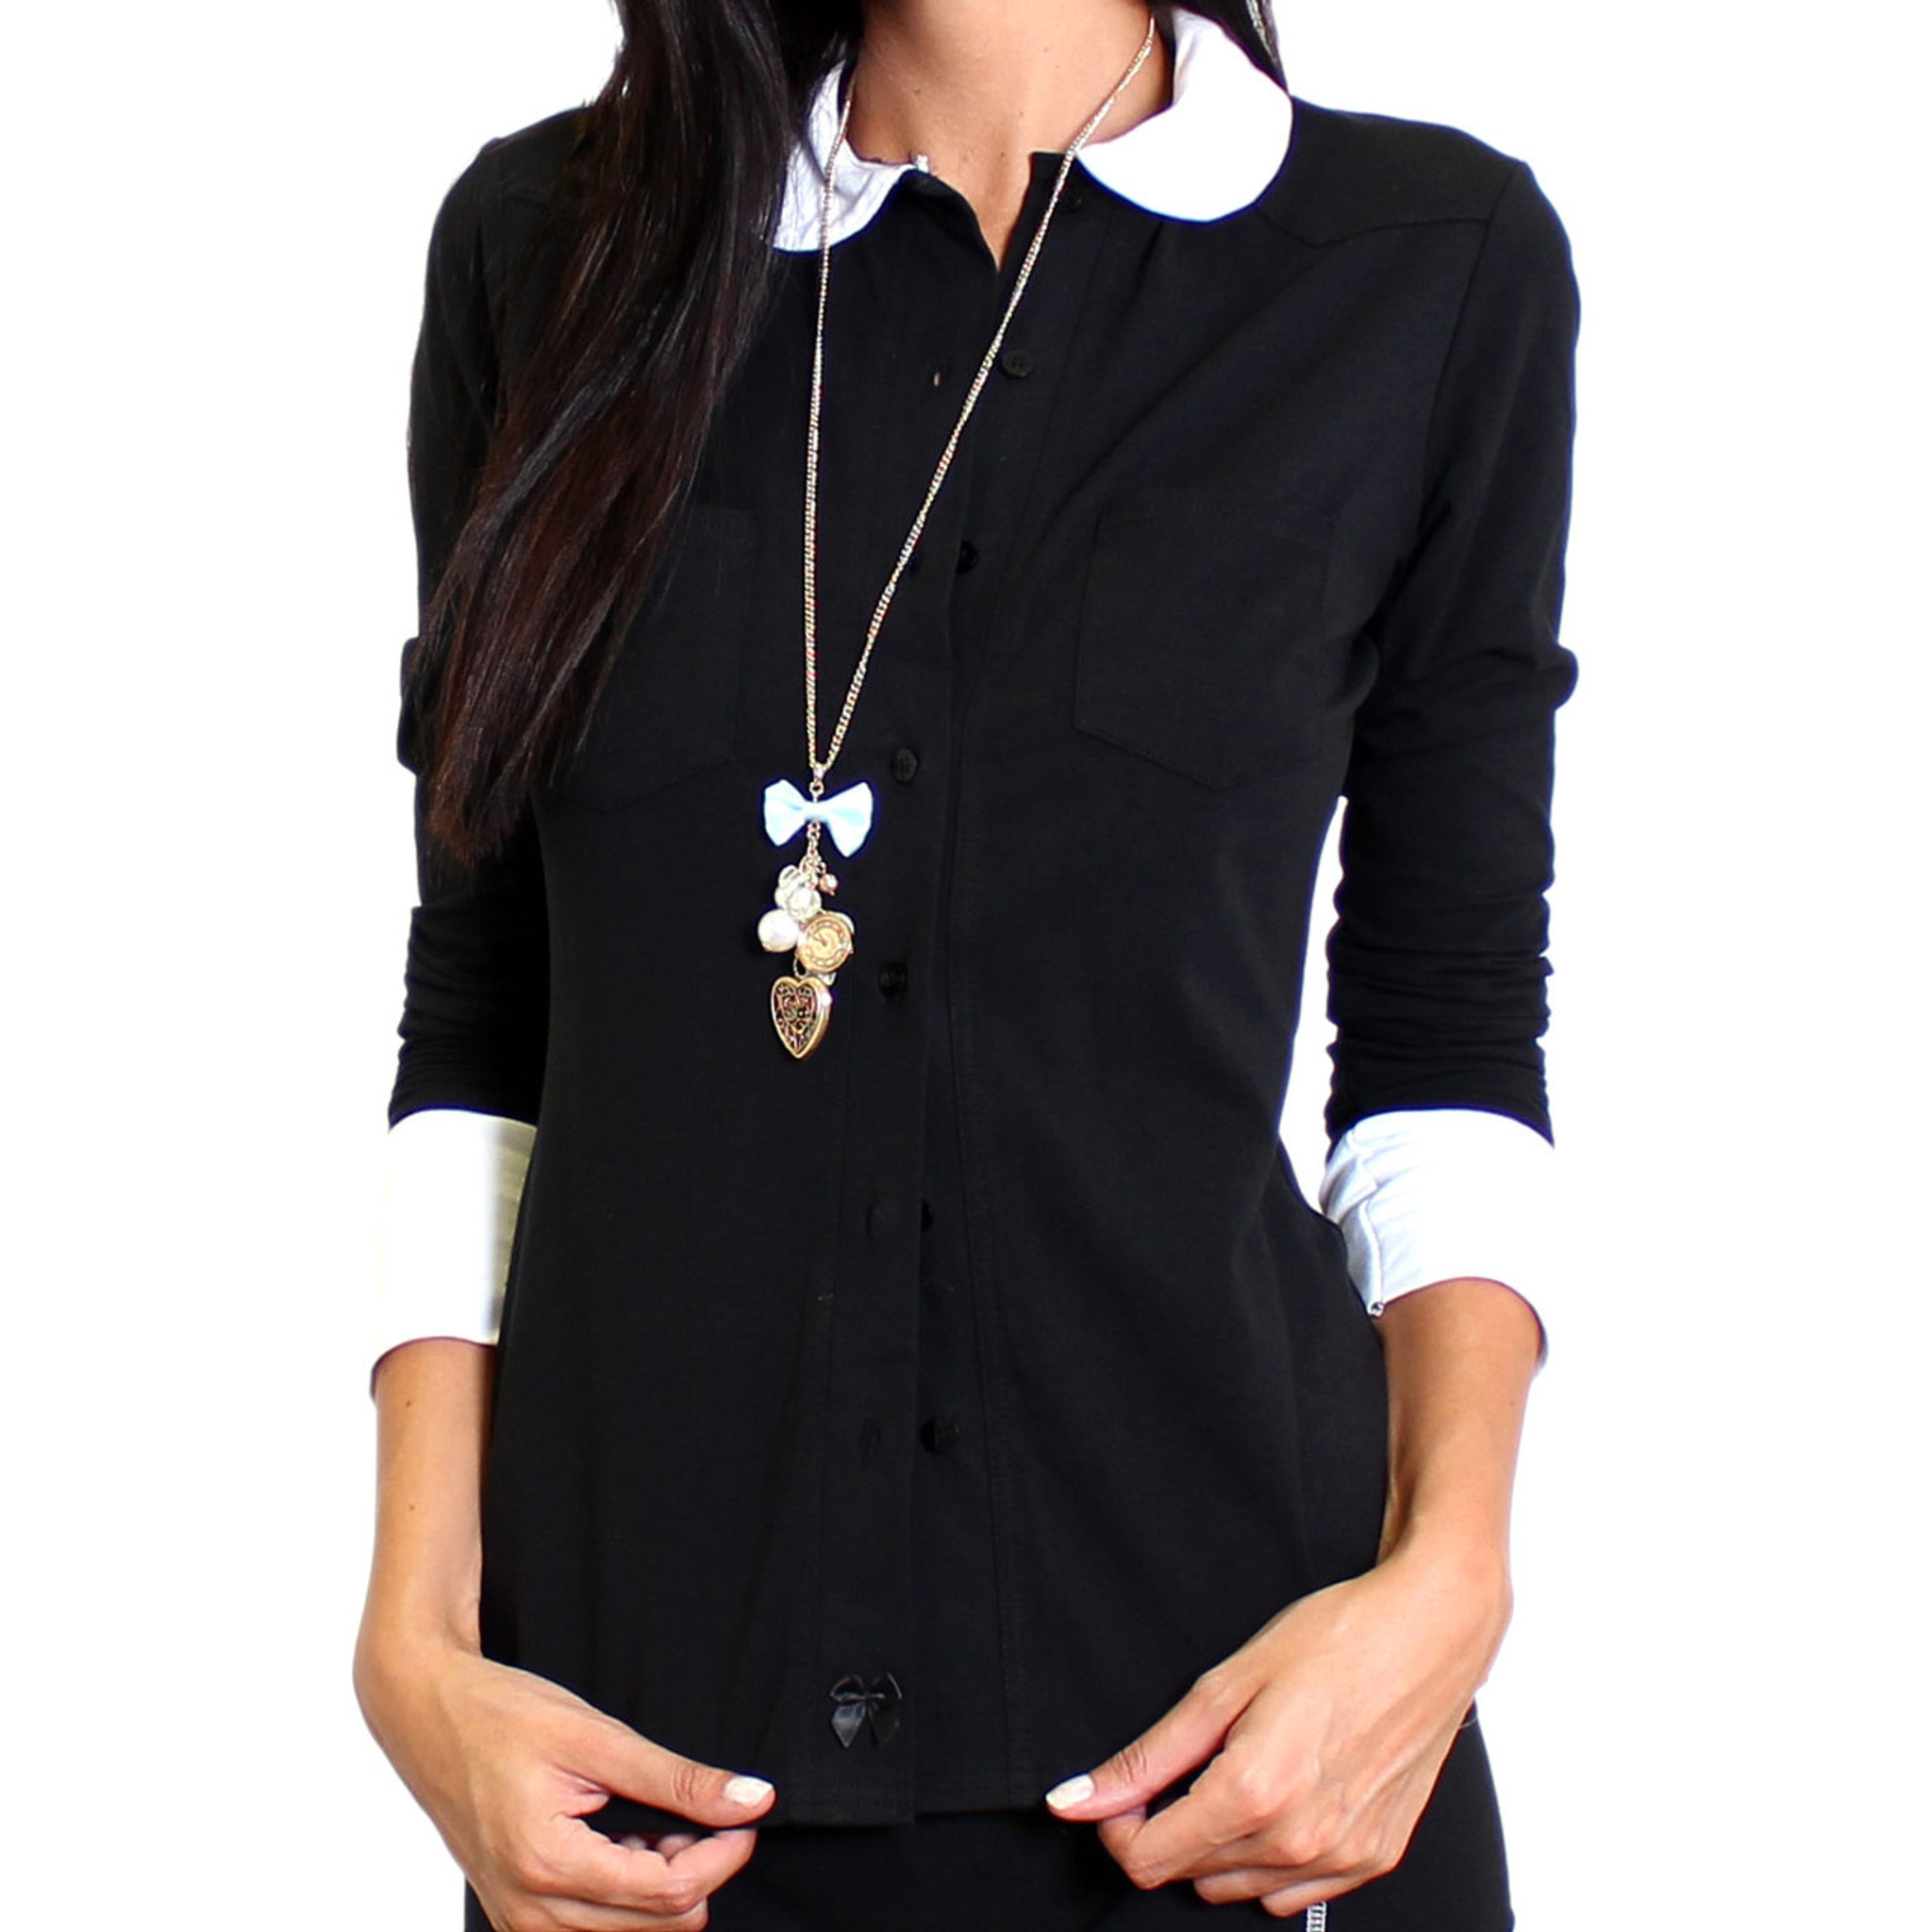 e37daf777a Womens Black Button Down Blouse with White Peter Pan Collar and Cuffs  Stylish ...